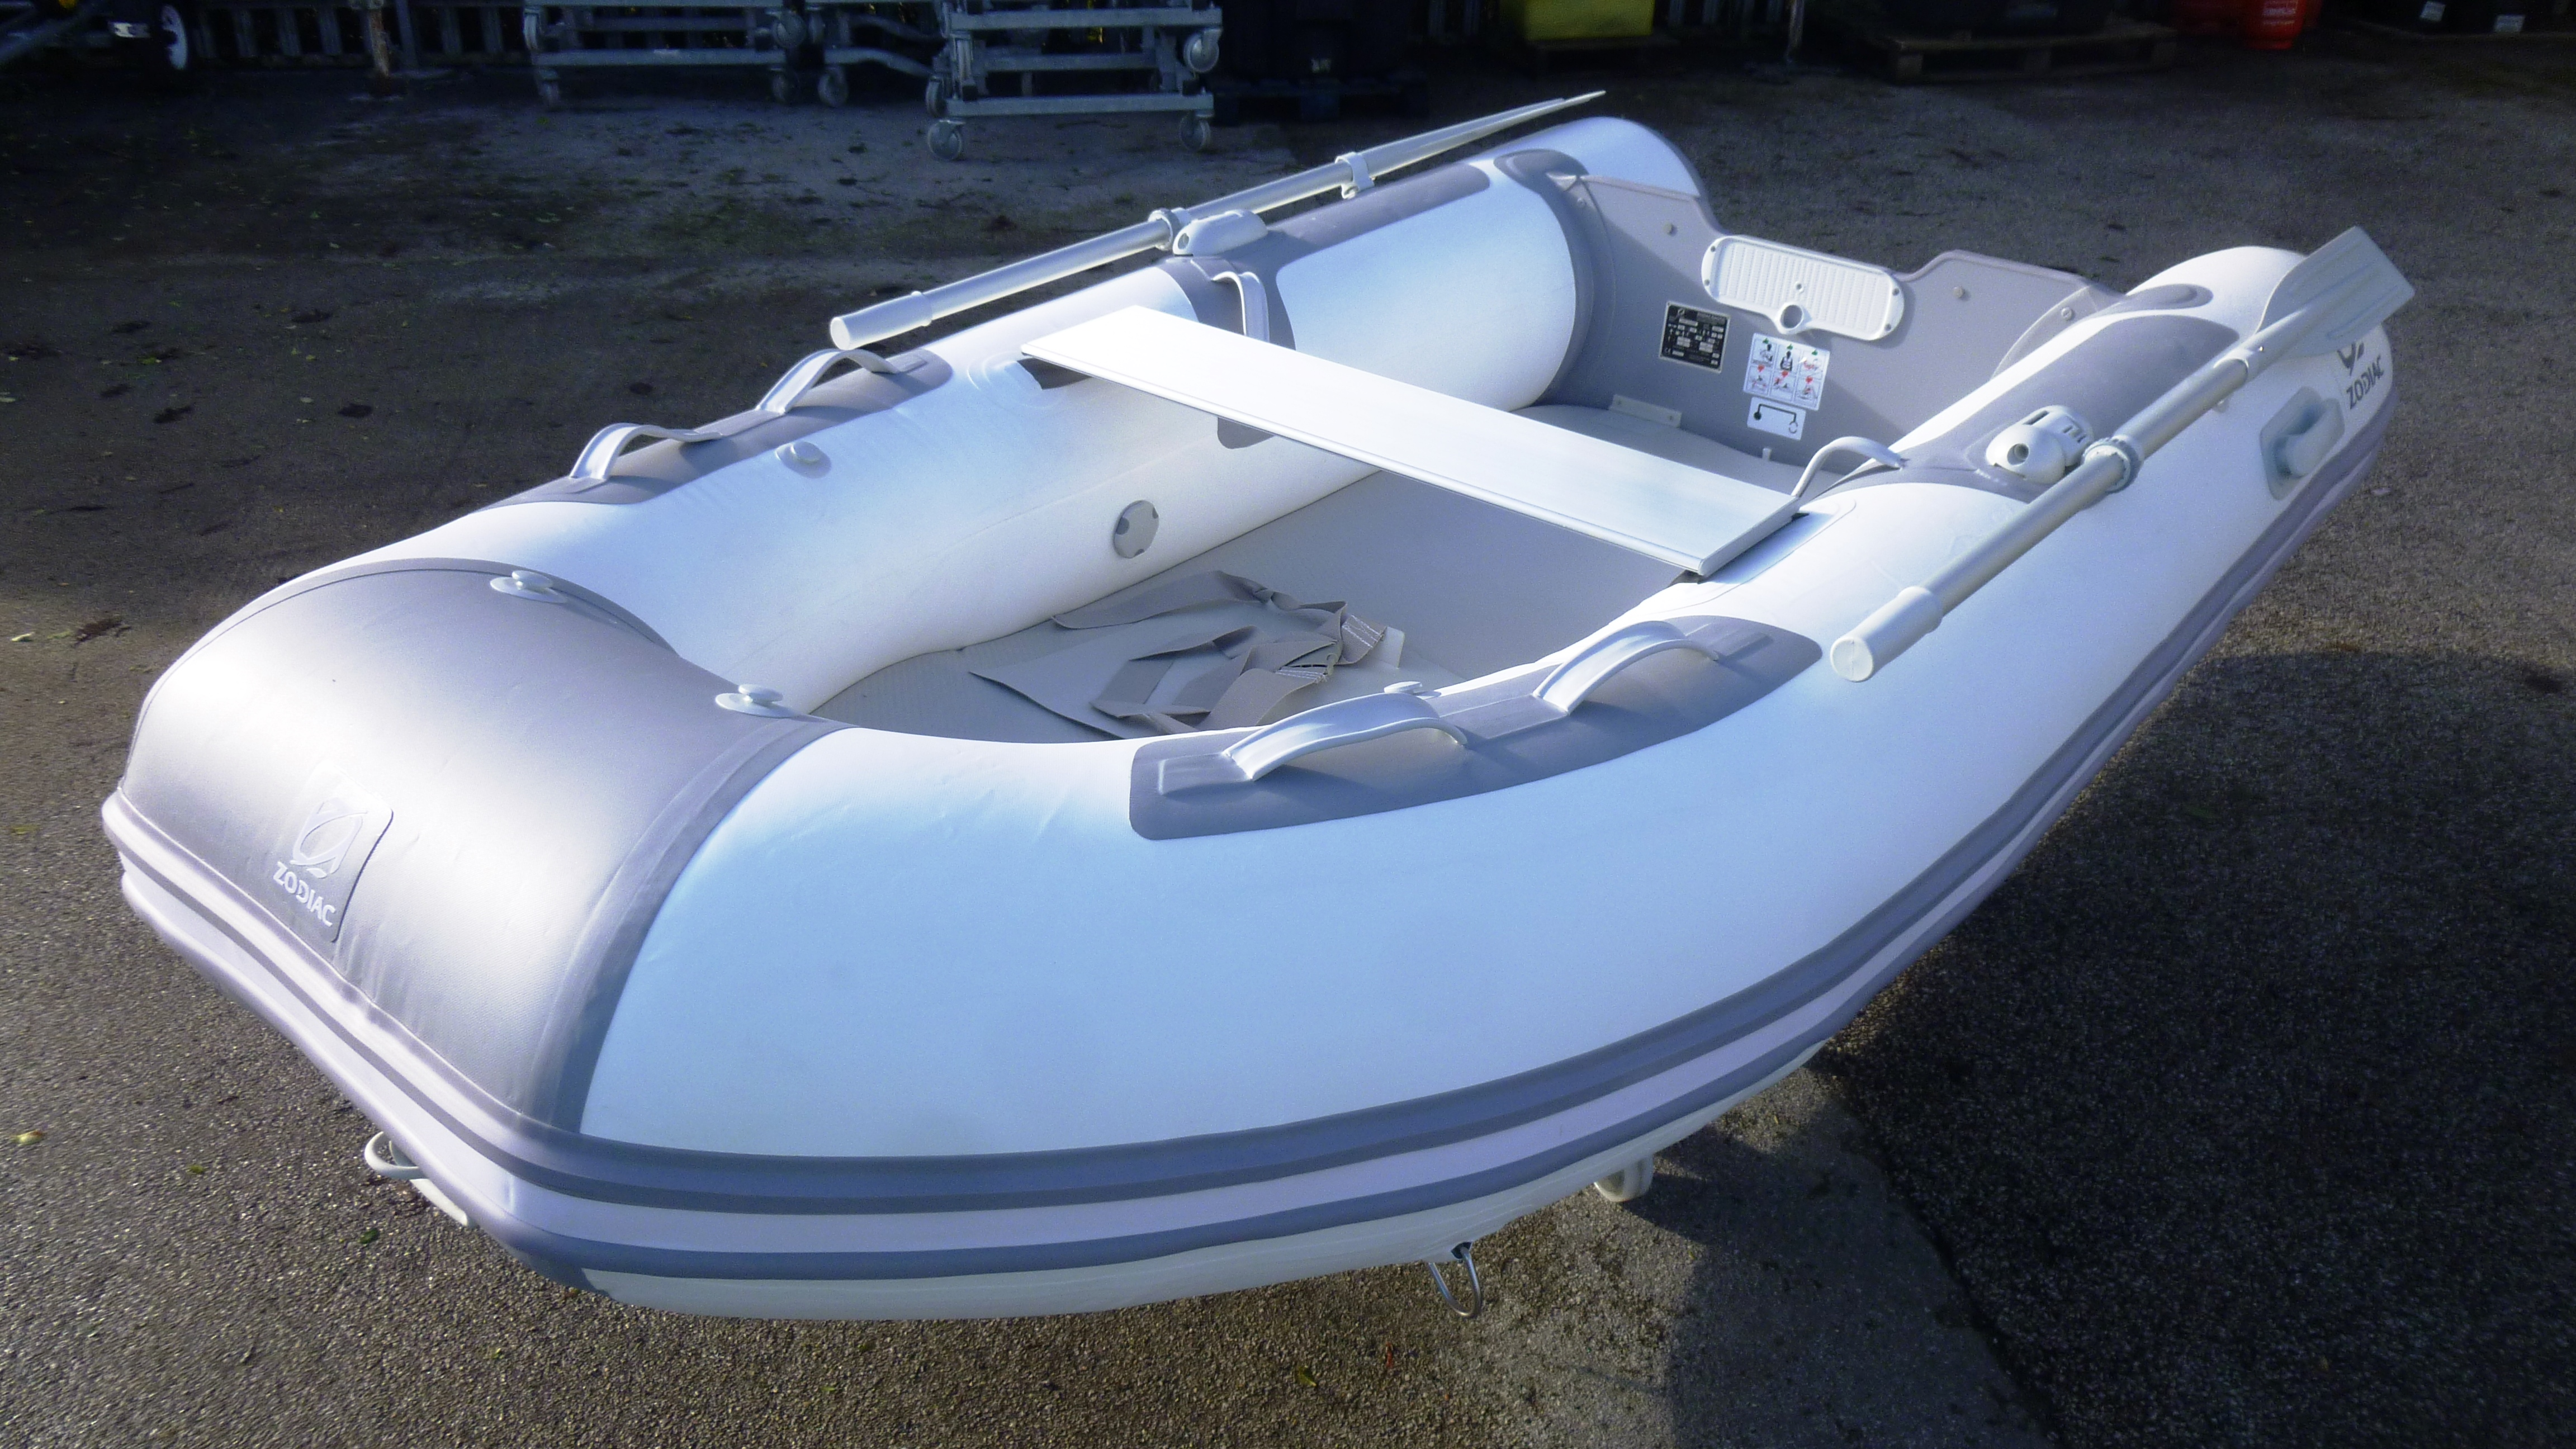 Zodaic Cadet Aero Air Floor Inflatable Boat Www